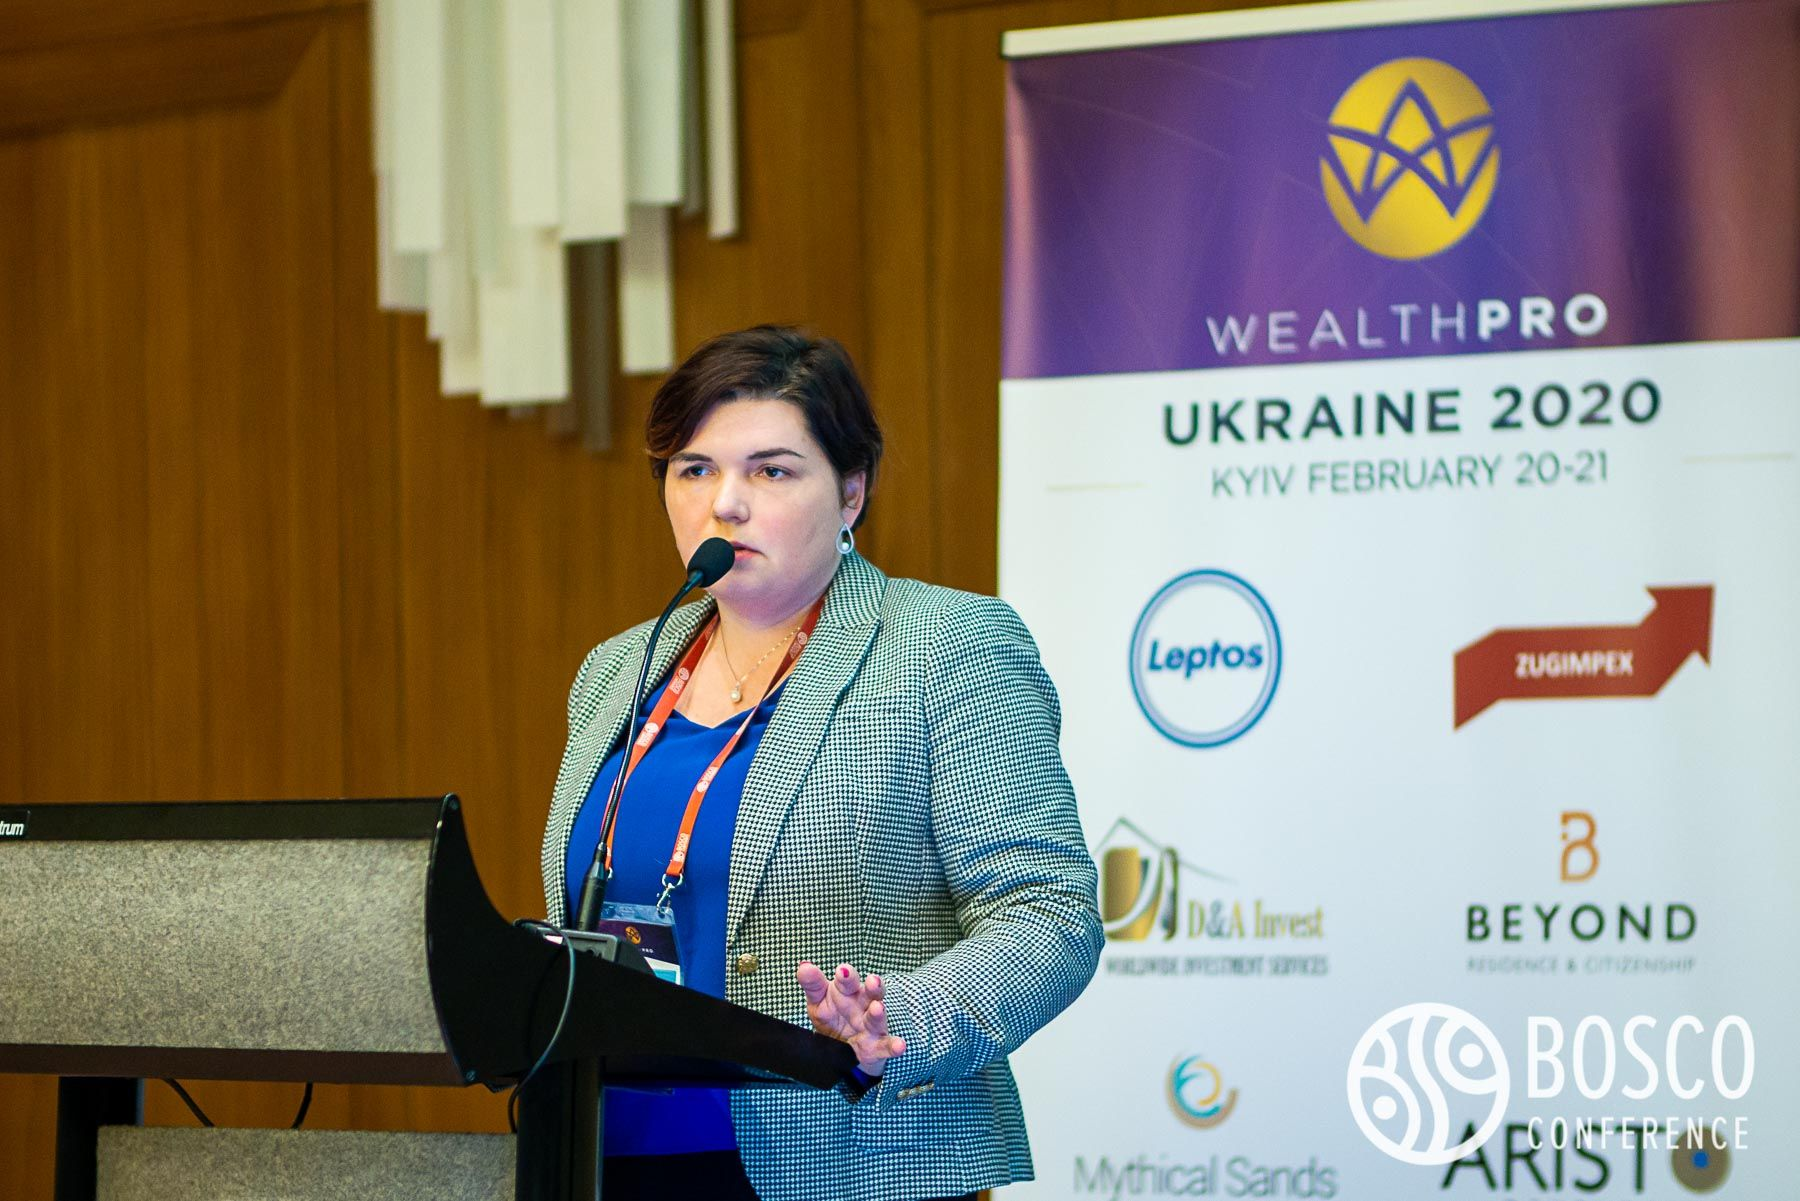 WealthPro Ukraine Kyiv 2020 165